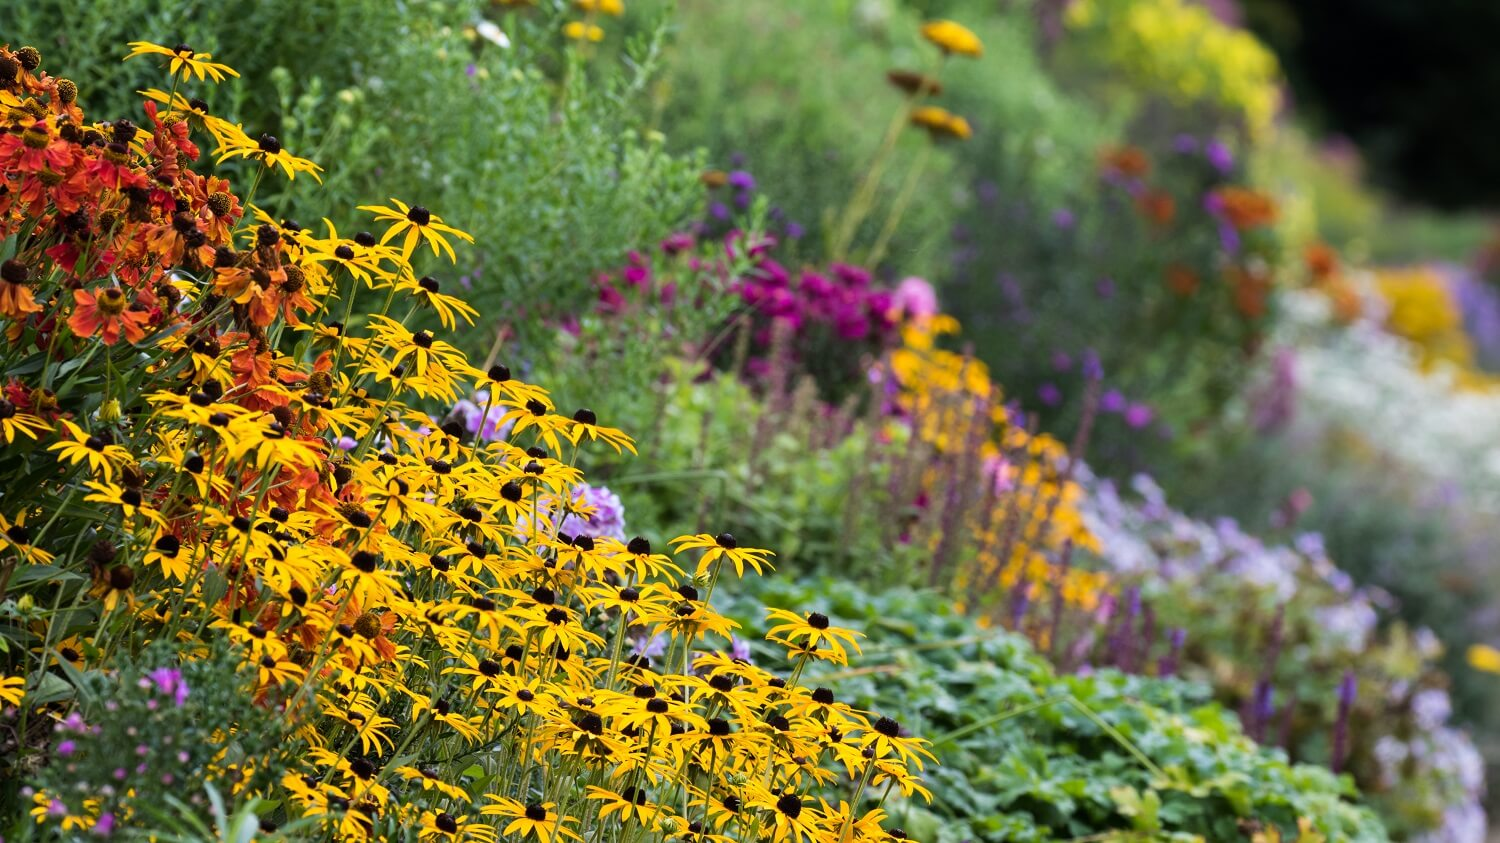 In September, Heleniums, Rudbeckia and early Michaelmas daisies brighten the herbaceous border at Waterperry Gardens. Image: Chris Denning/ Verve Garden Design.